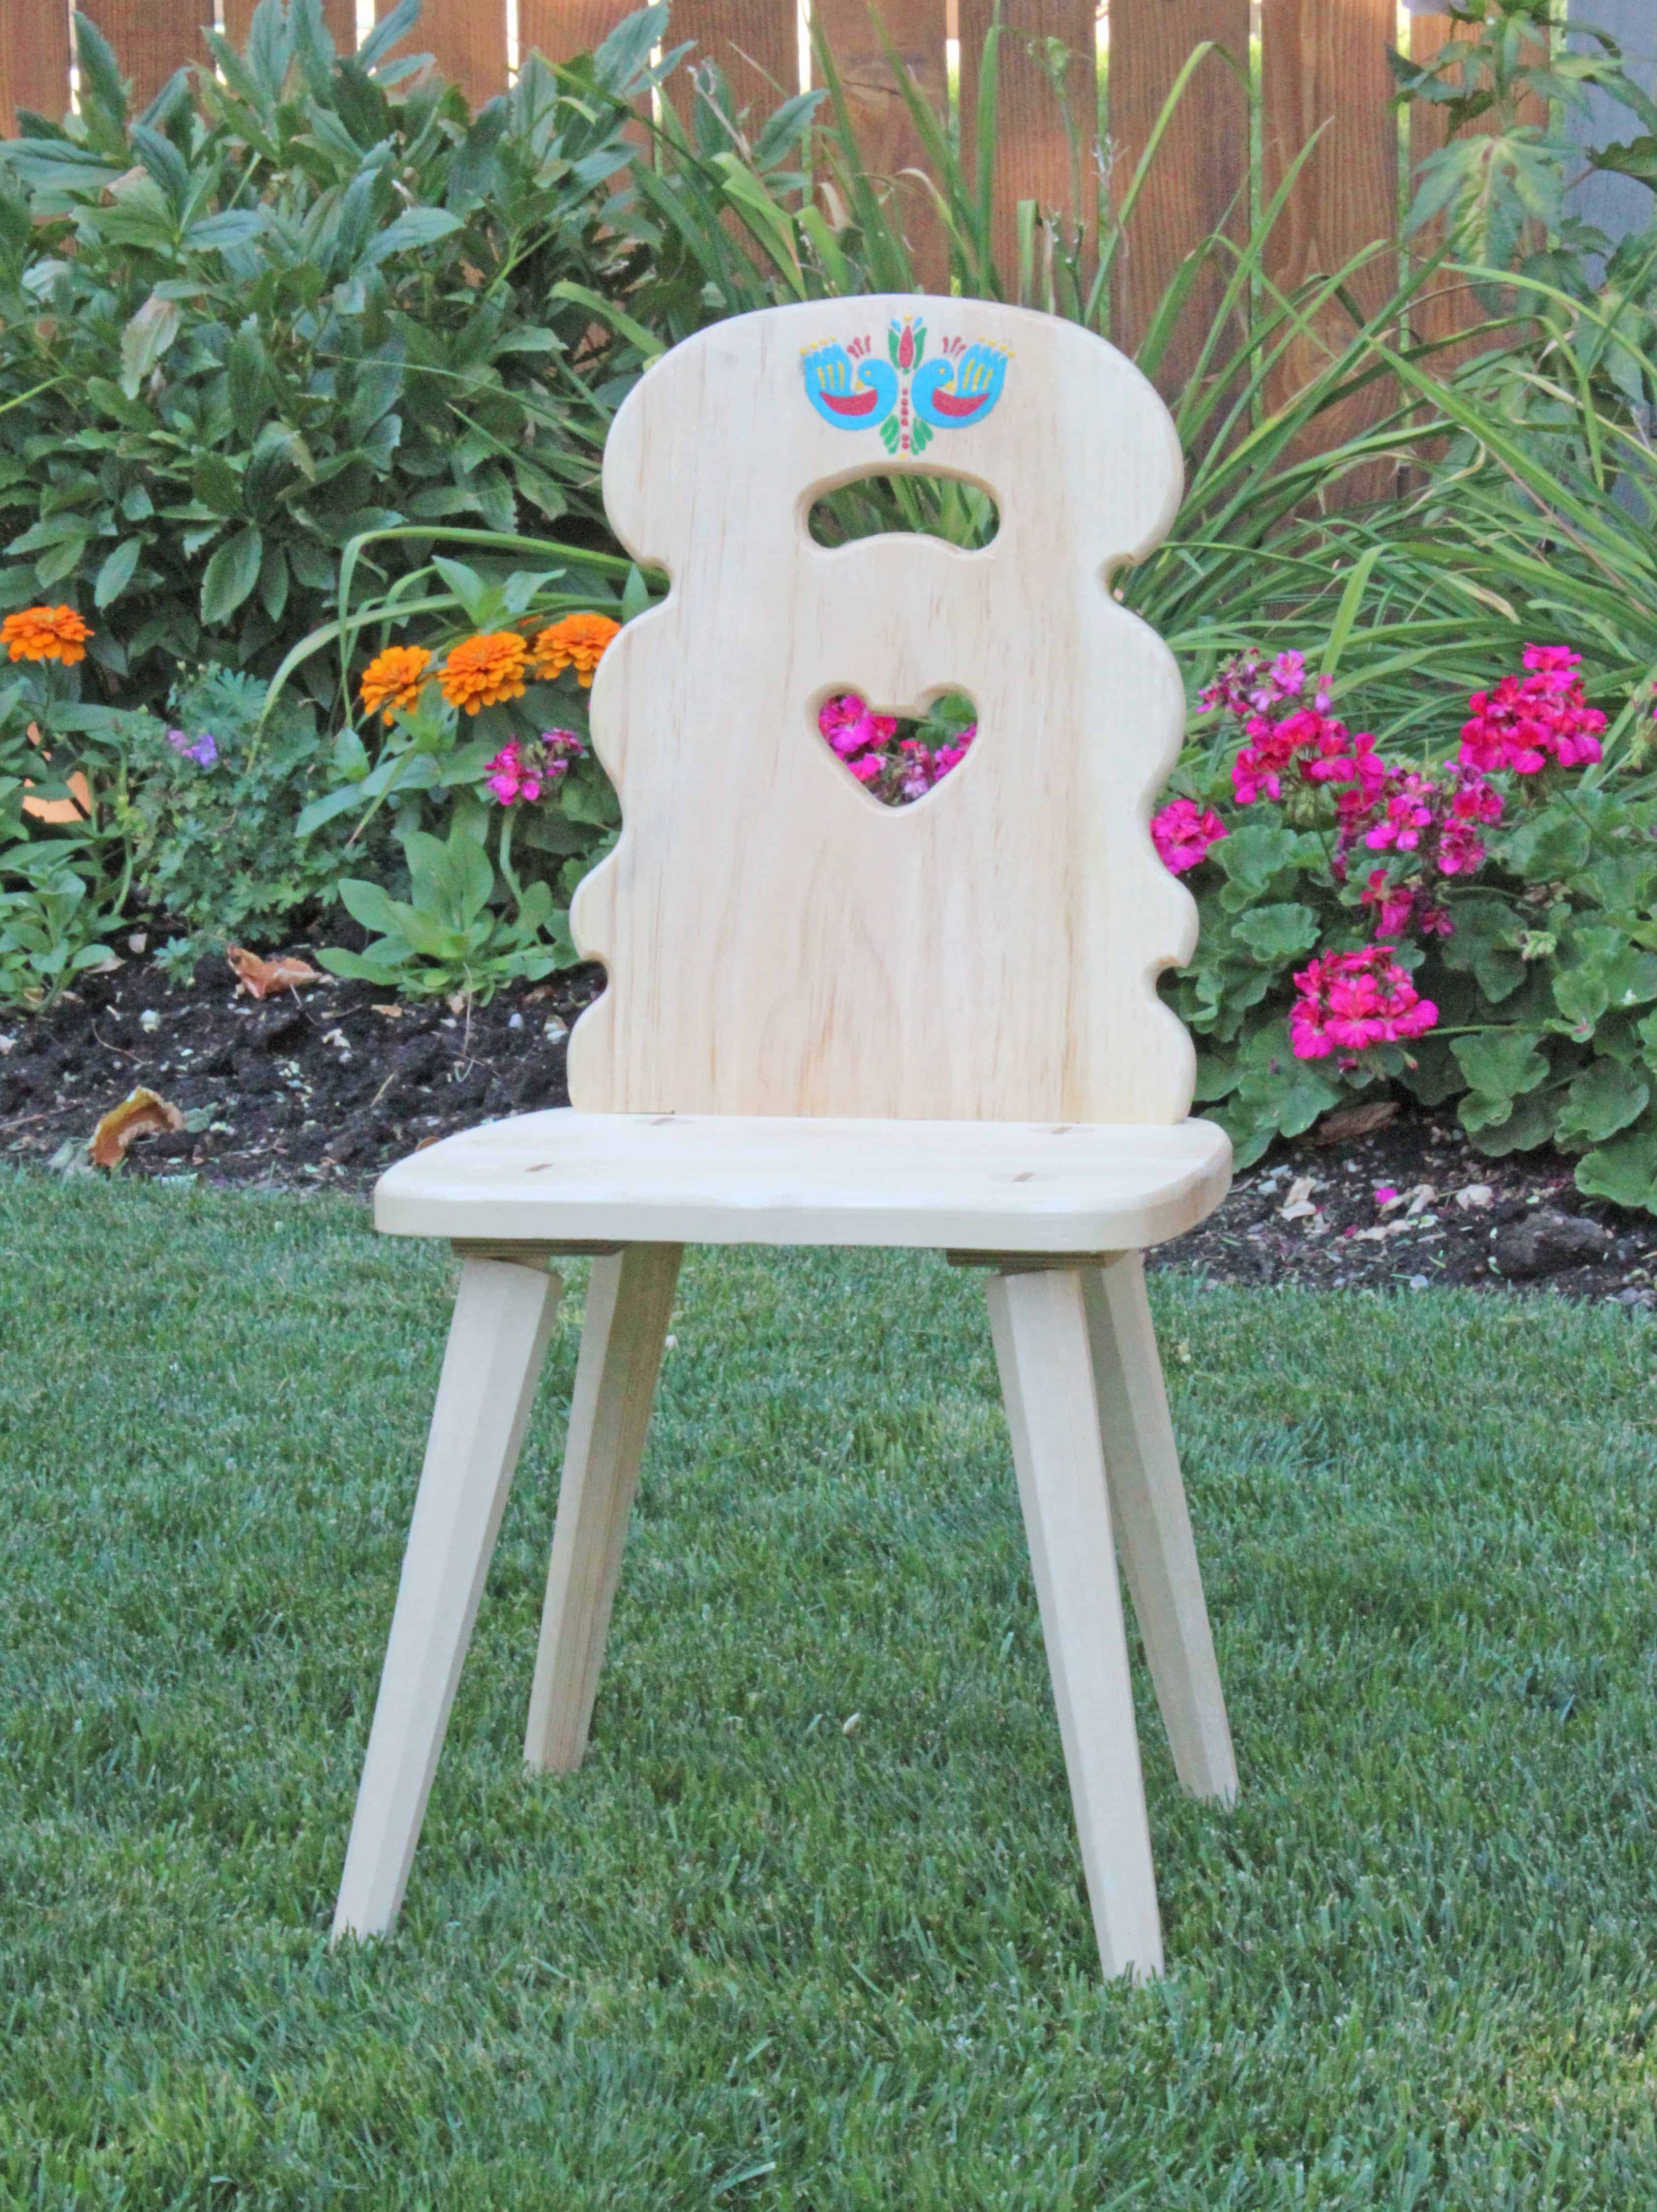 """Chair from """"Heidi"""", a Shirley Temple movie favorite"""